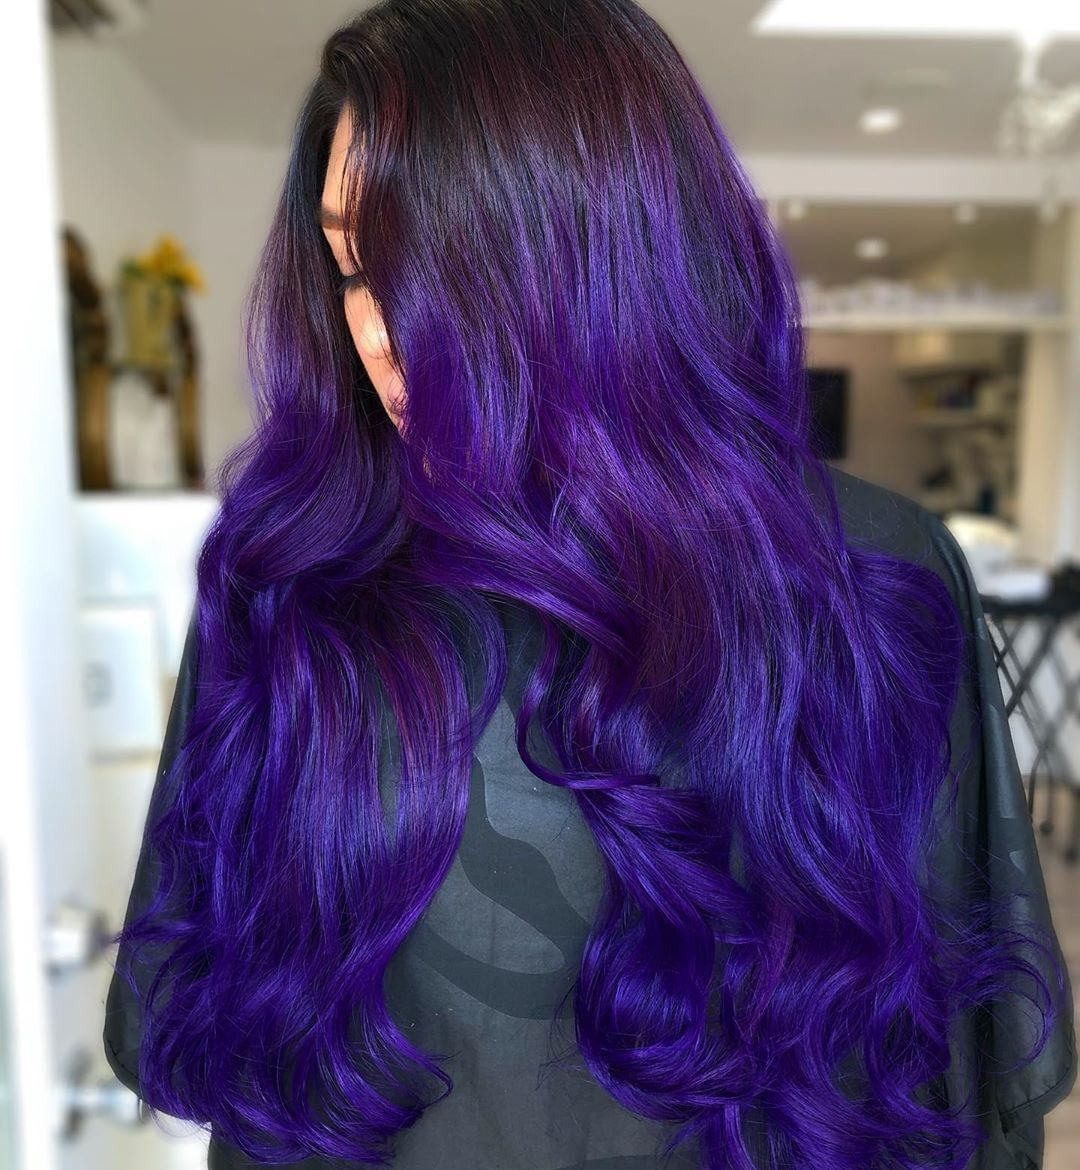 Vegan Cruelty Free Color On Instagram Violet Waves For Days By Lizzvargashair She Used Purple Rai Dyed Hair Inspiration Indigo Hair Arctic Fox Hair Color